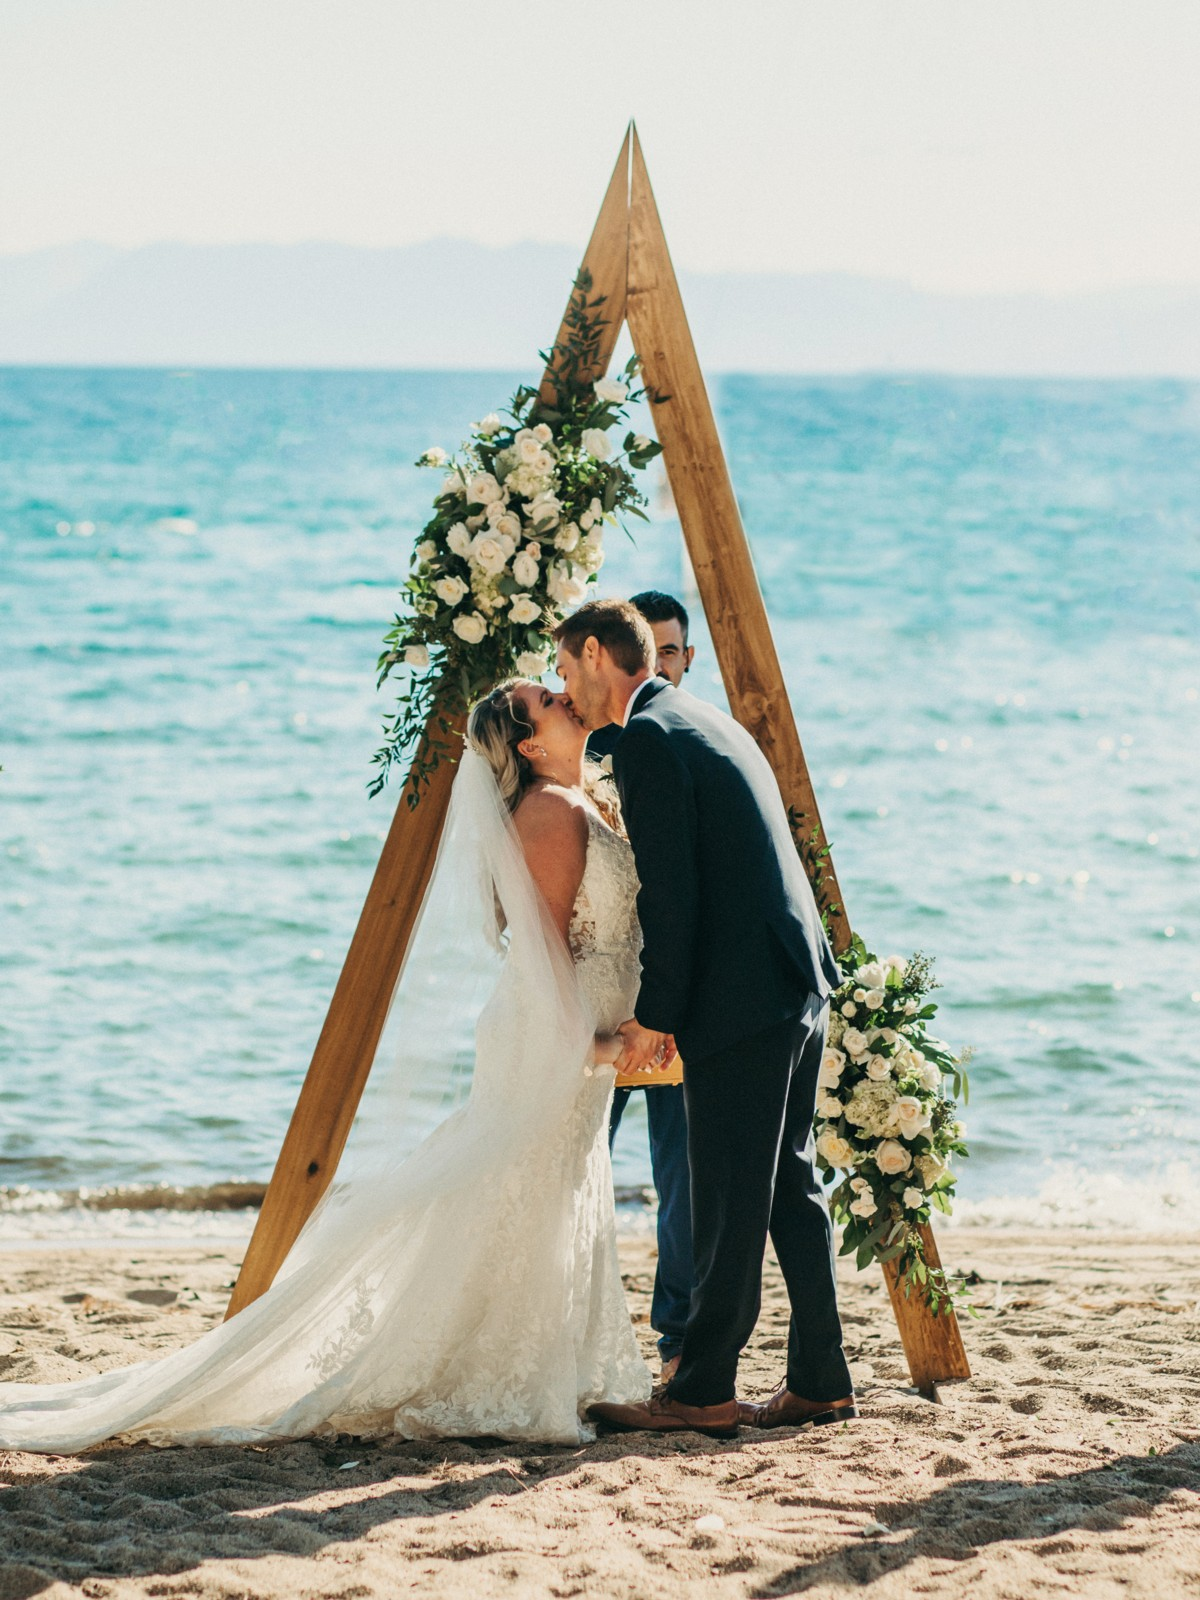 Marcella Camille Events - Lake Tahoe wedding planner - the kiss